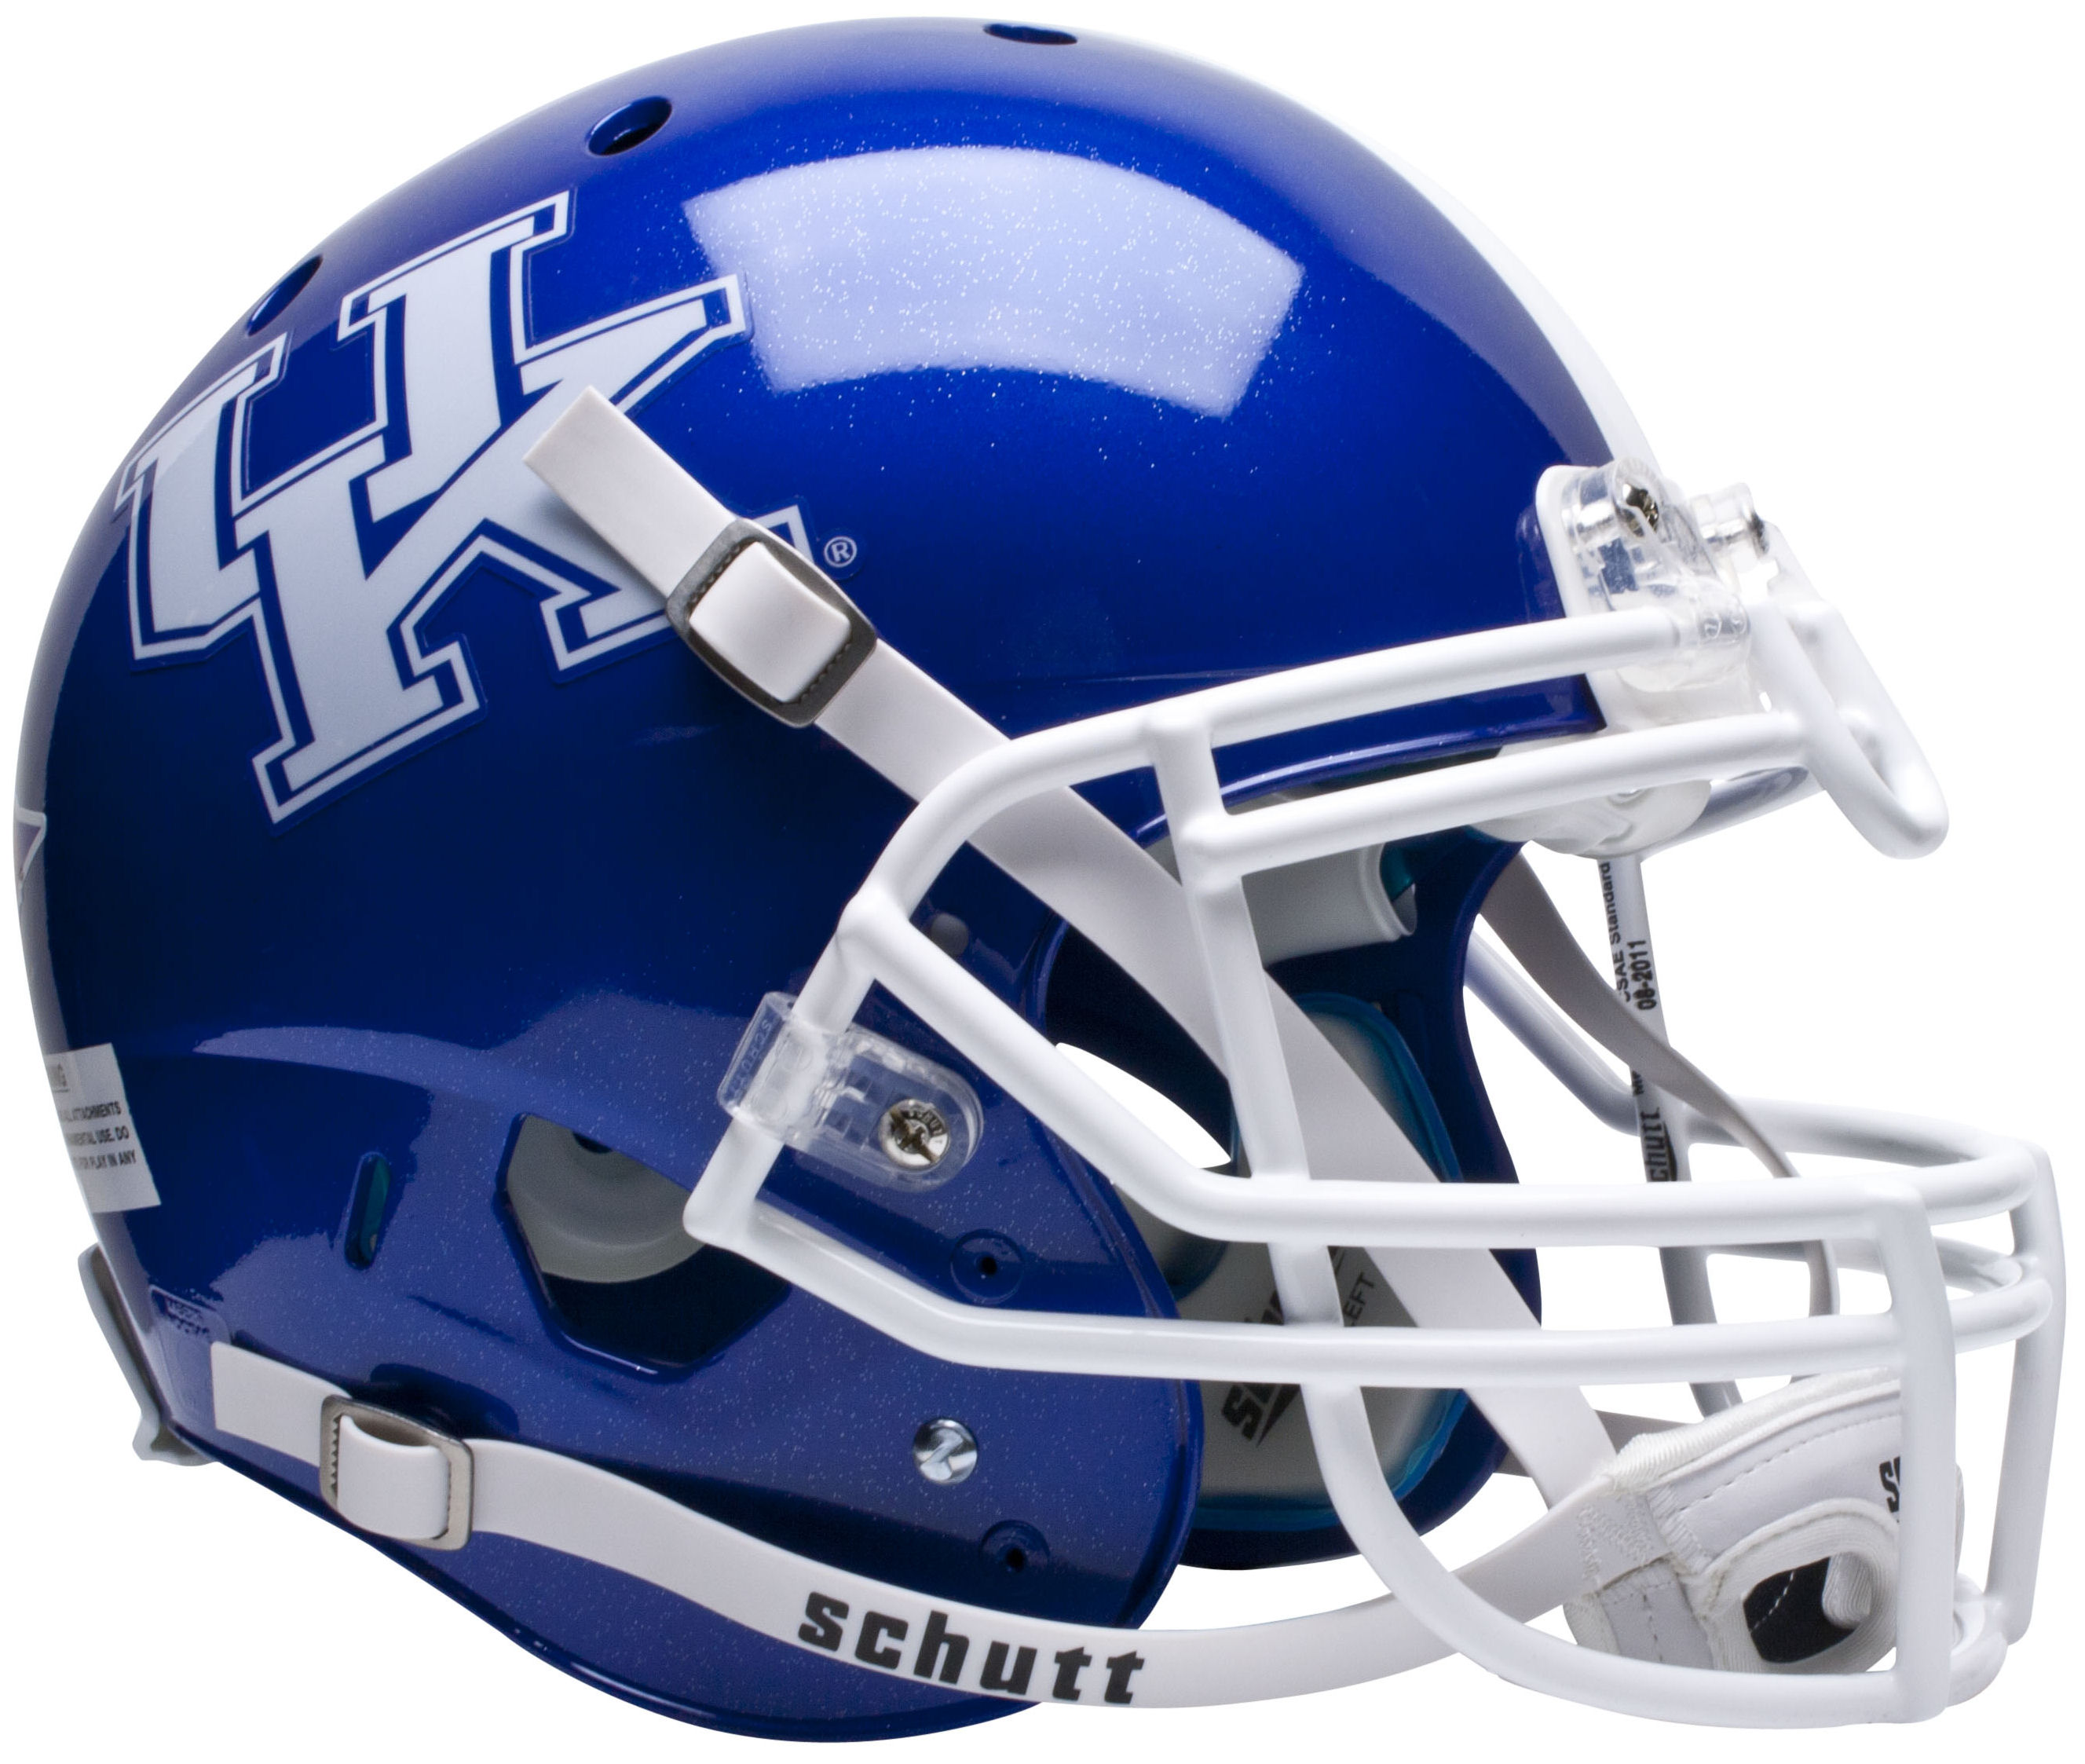 Kentucky Wildcats Authentic College XP Football Helmet Schutt